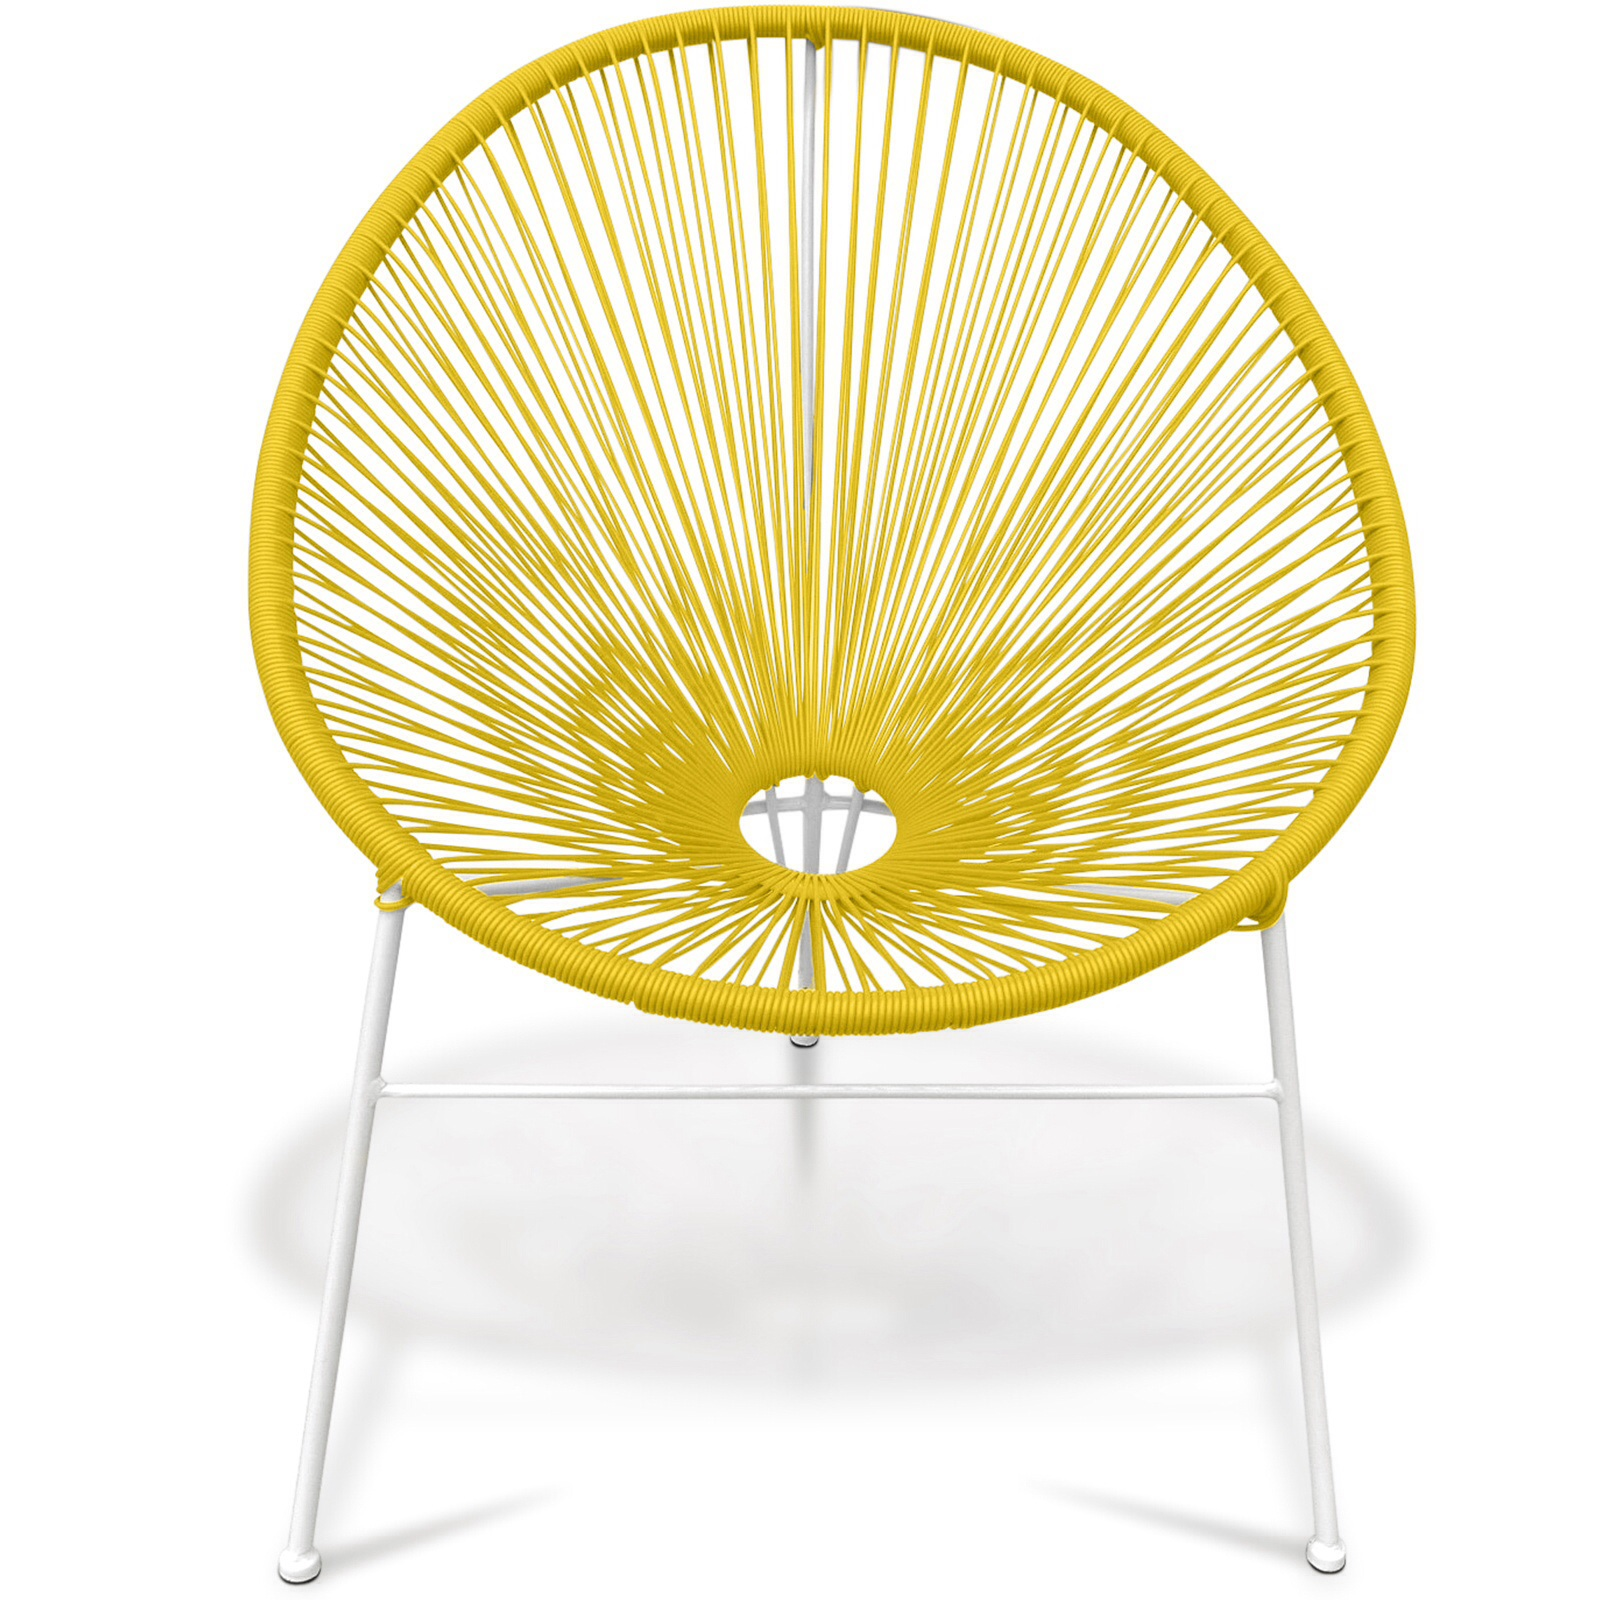 Aruba rattan indoor outdoor chair yellow specialist for Outdoor furniture yellow